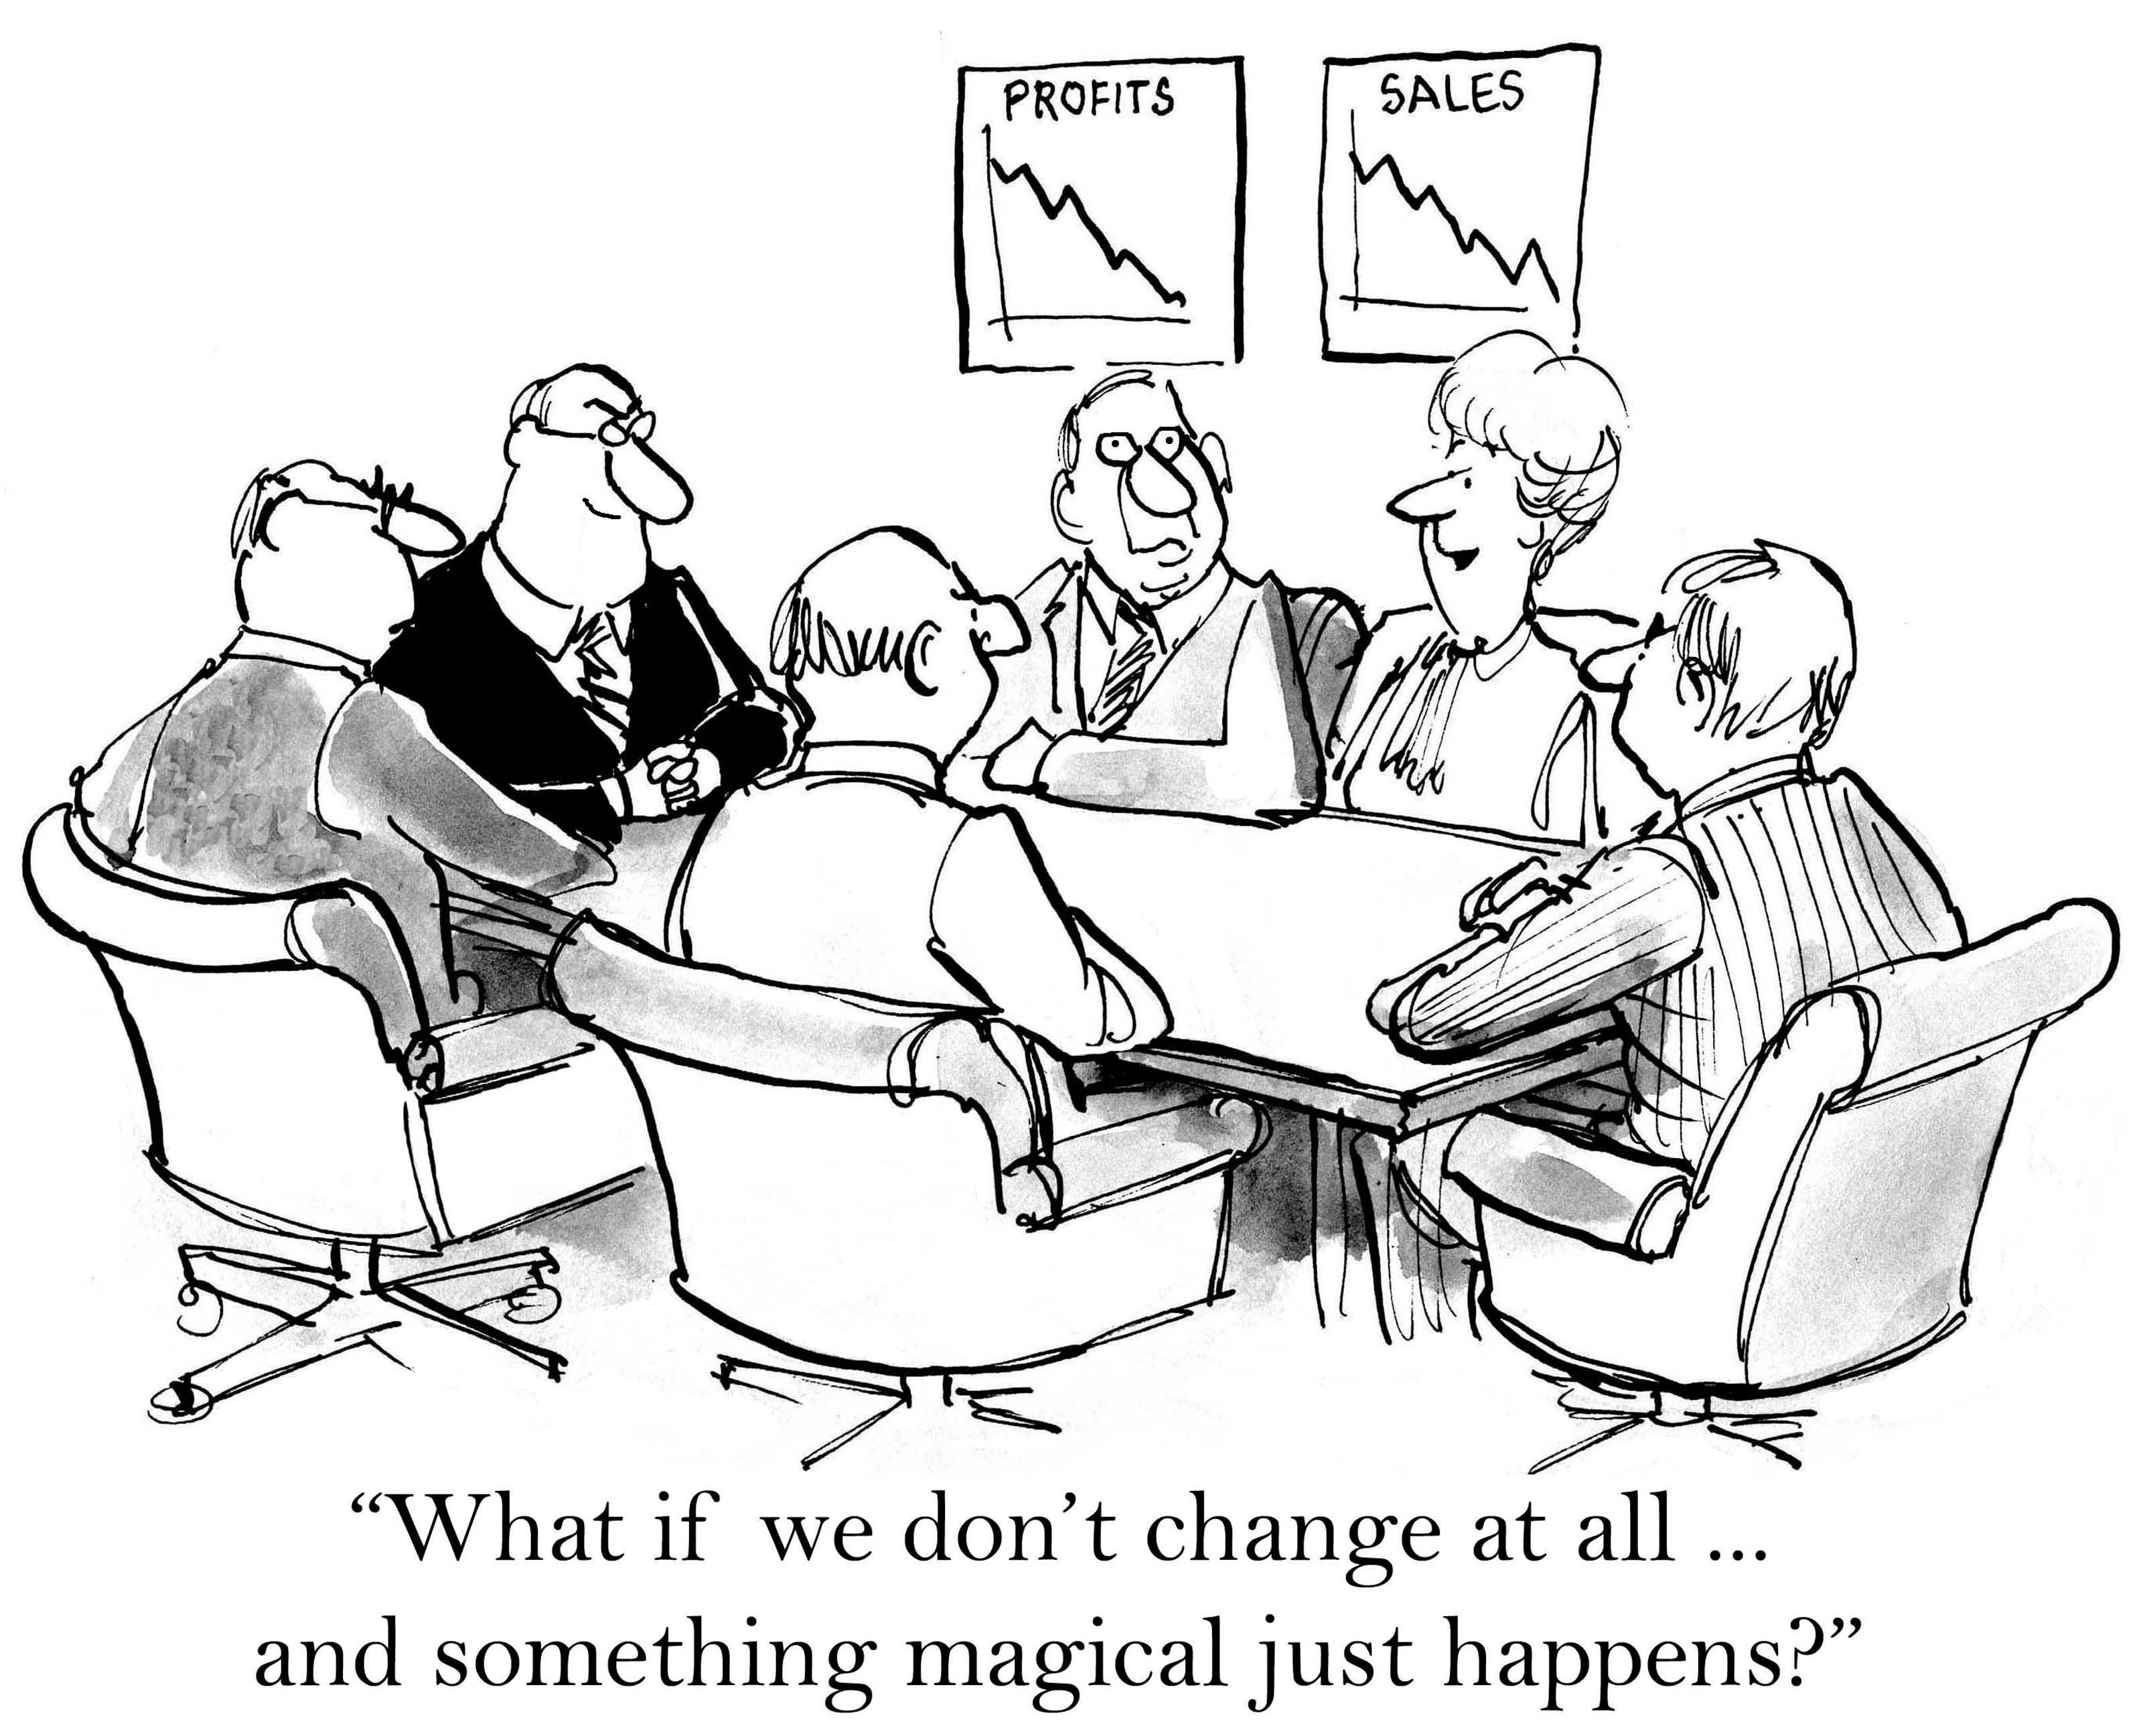 business-meeting-insanity-what-if-we-dont-change-and-something-magical-happens-cartoon